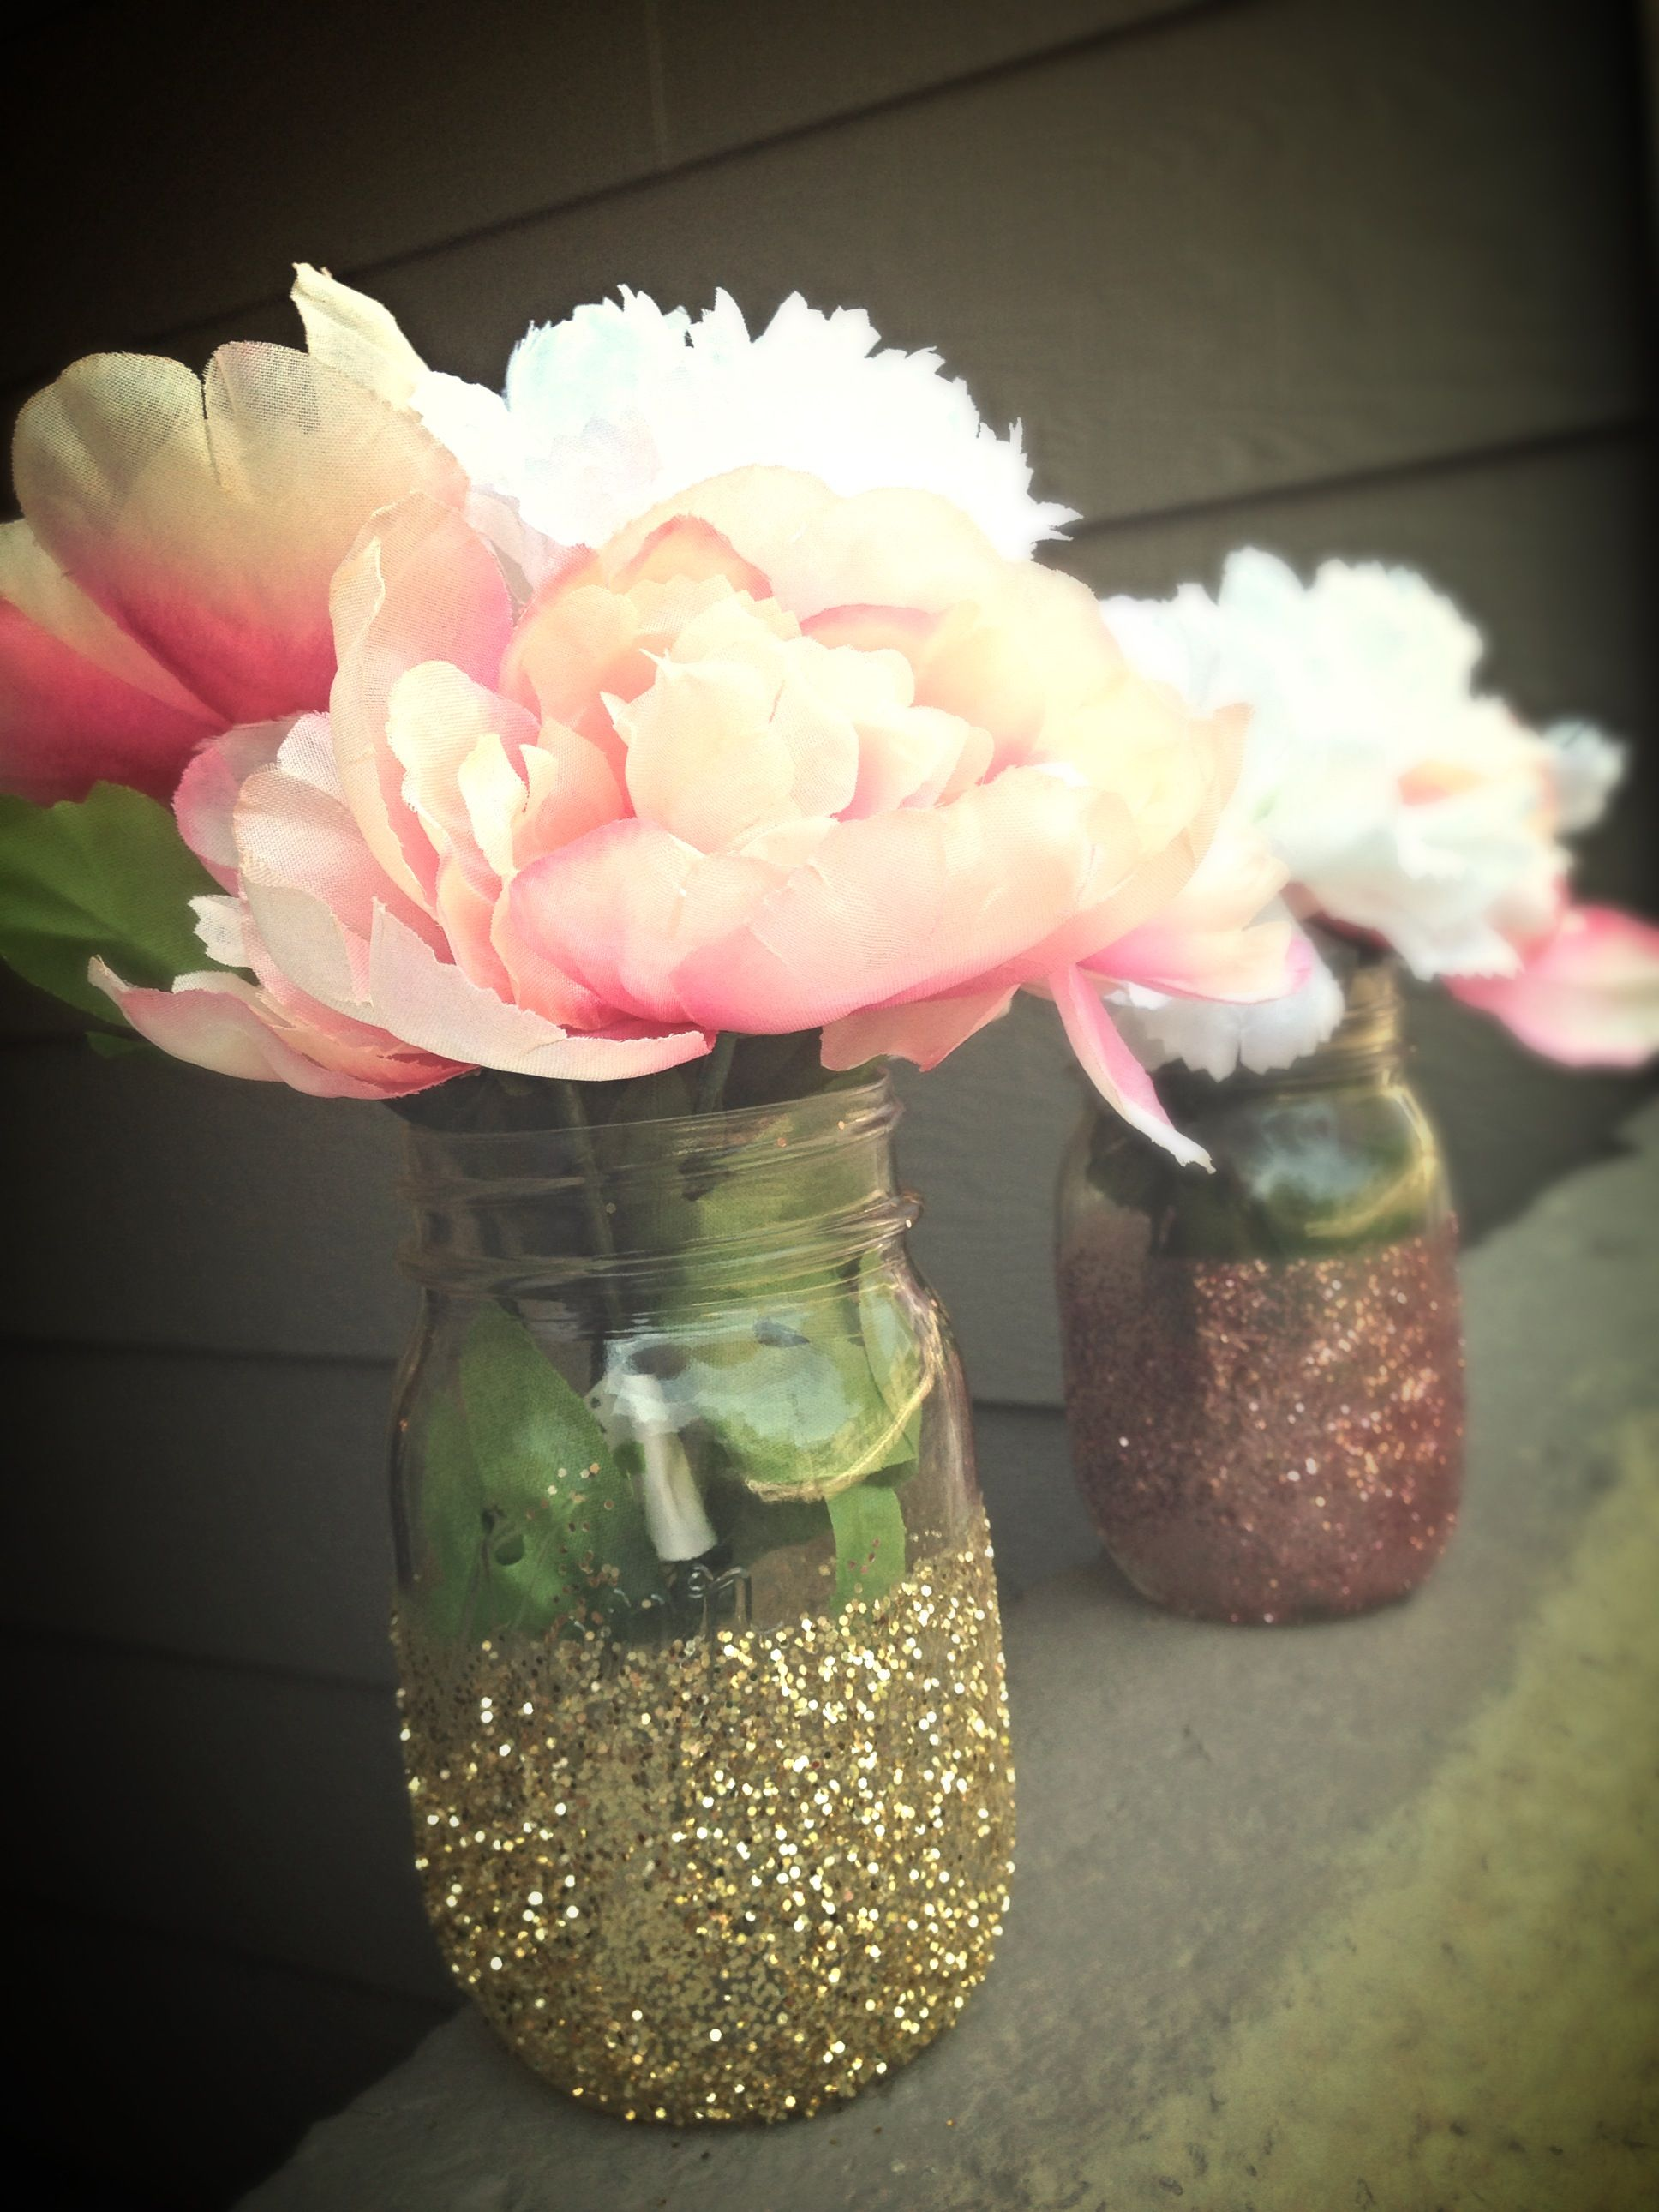 Glitter Mason Jar Centerpieces For Baby Shower | Baileyu0027s Communion |  Pinterest | Glitter Mason Jars, Mason Jar Centerpieces And Jar Centerpieces